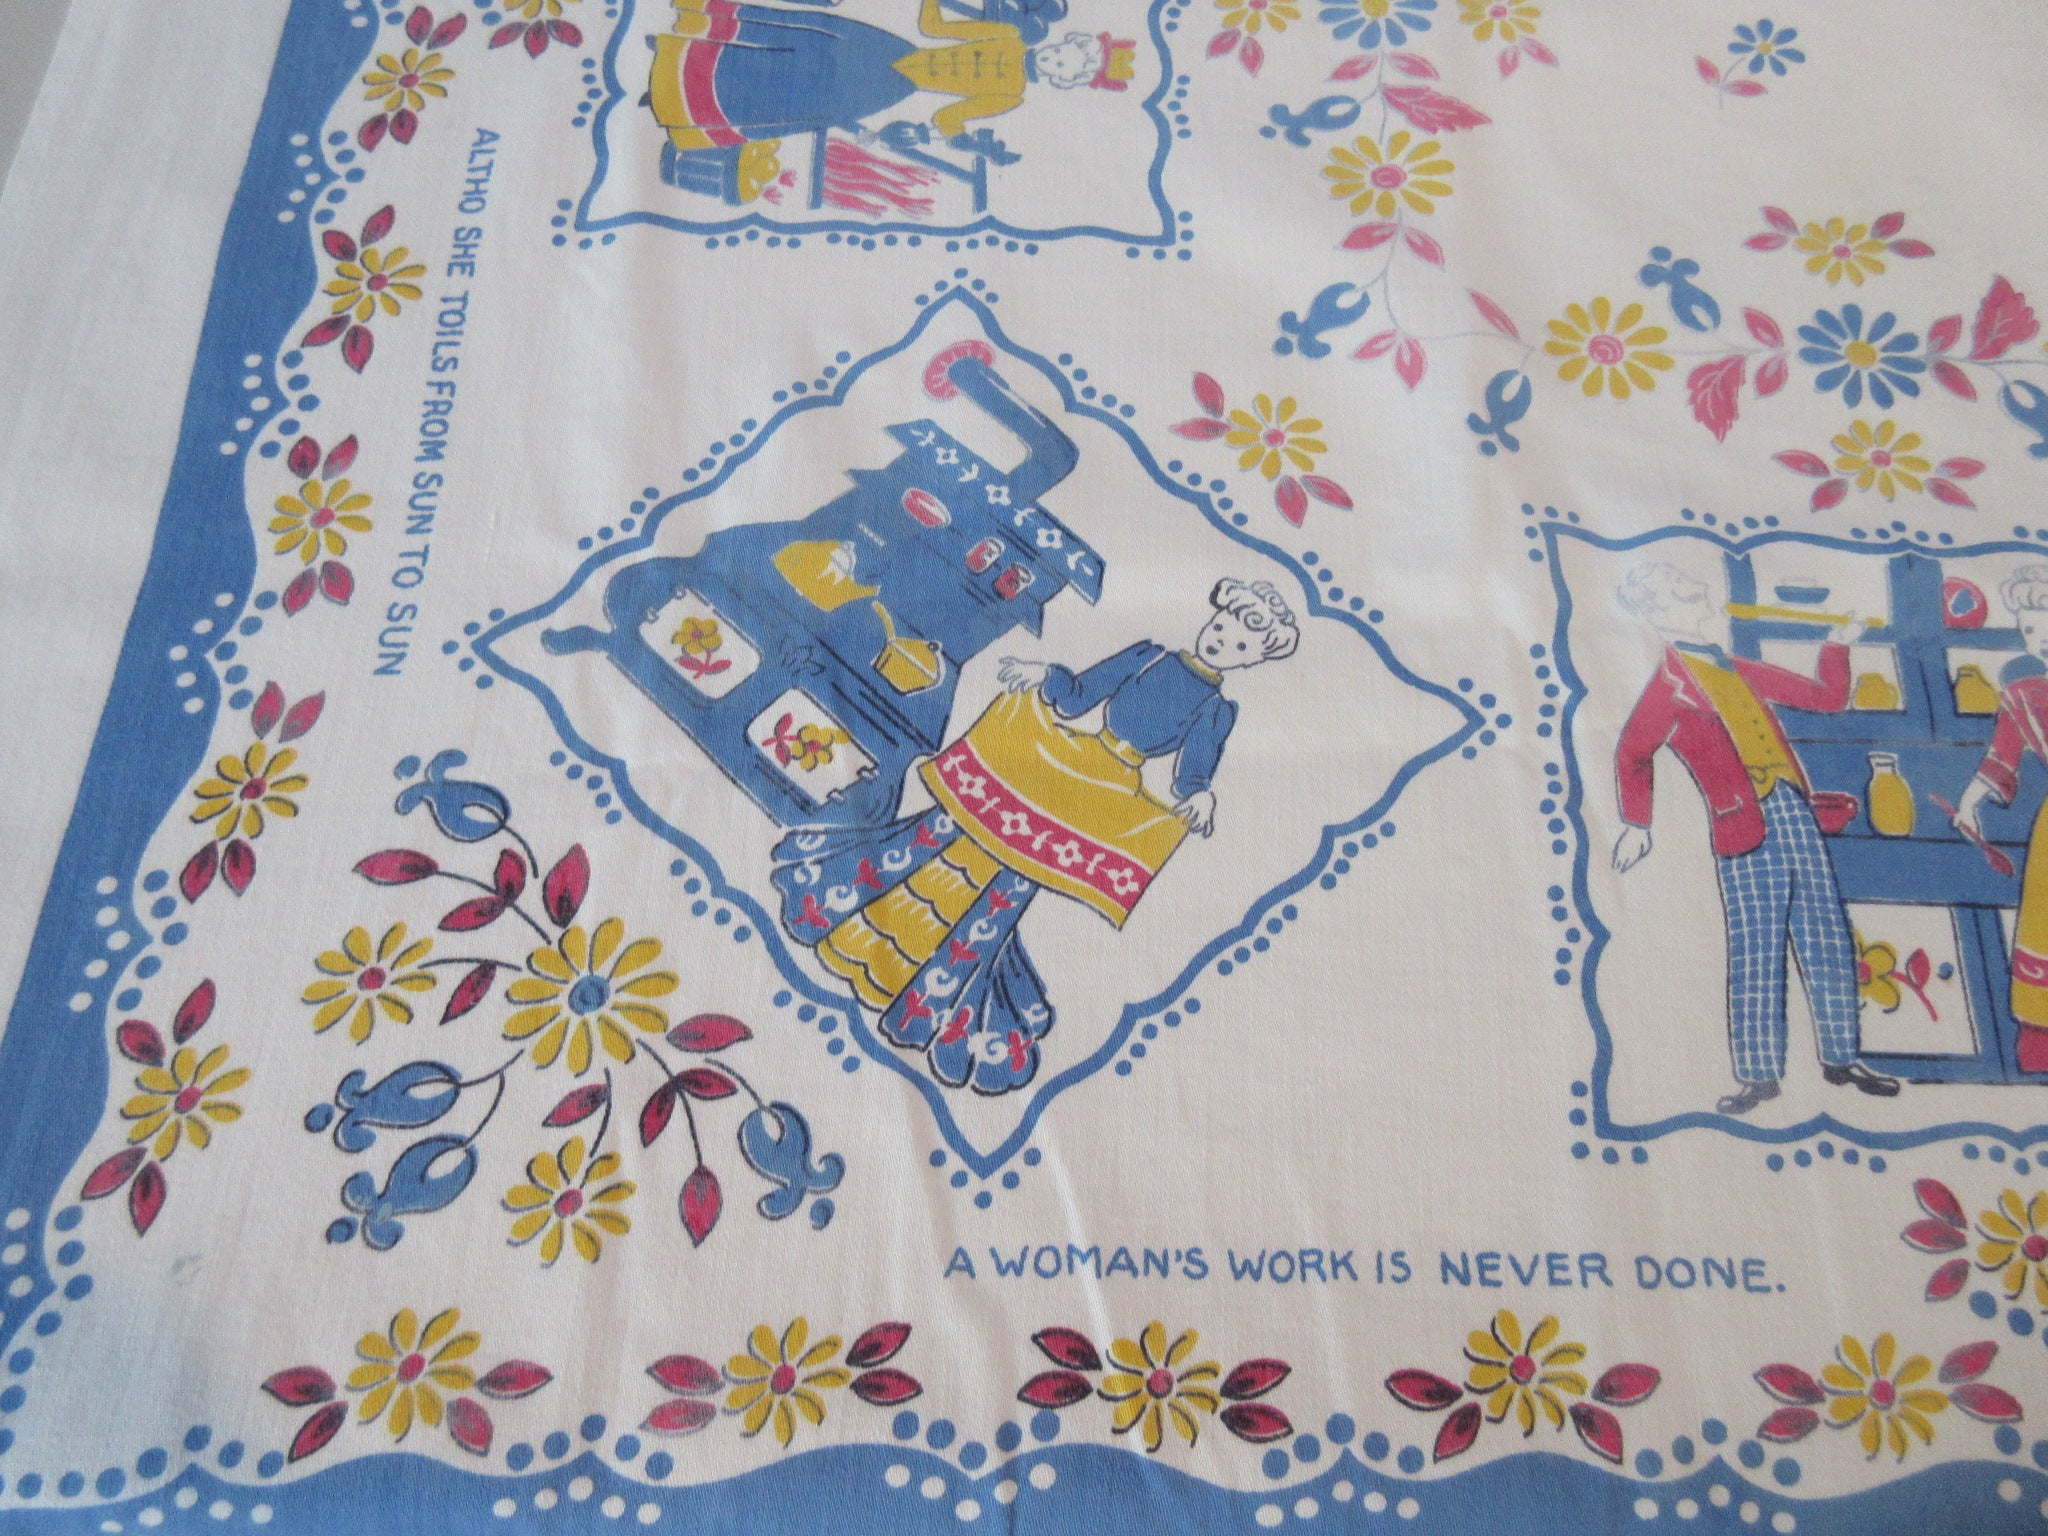 Womans Work Poem on Blue Novelty Vintage Printed Tablecloth (48 X 45)